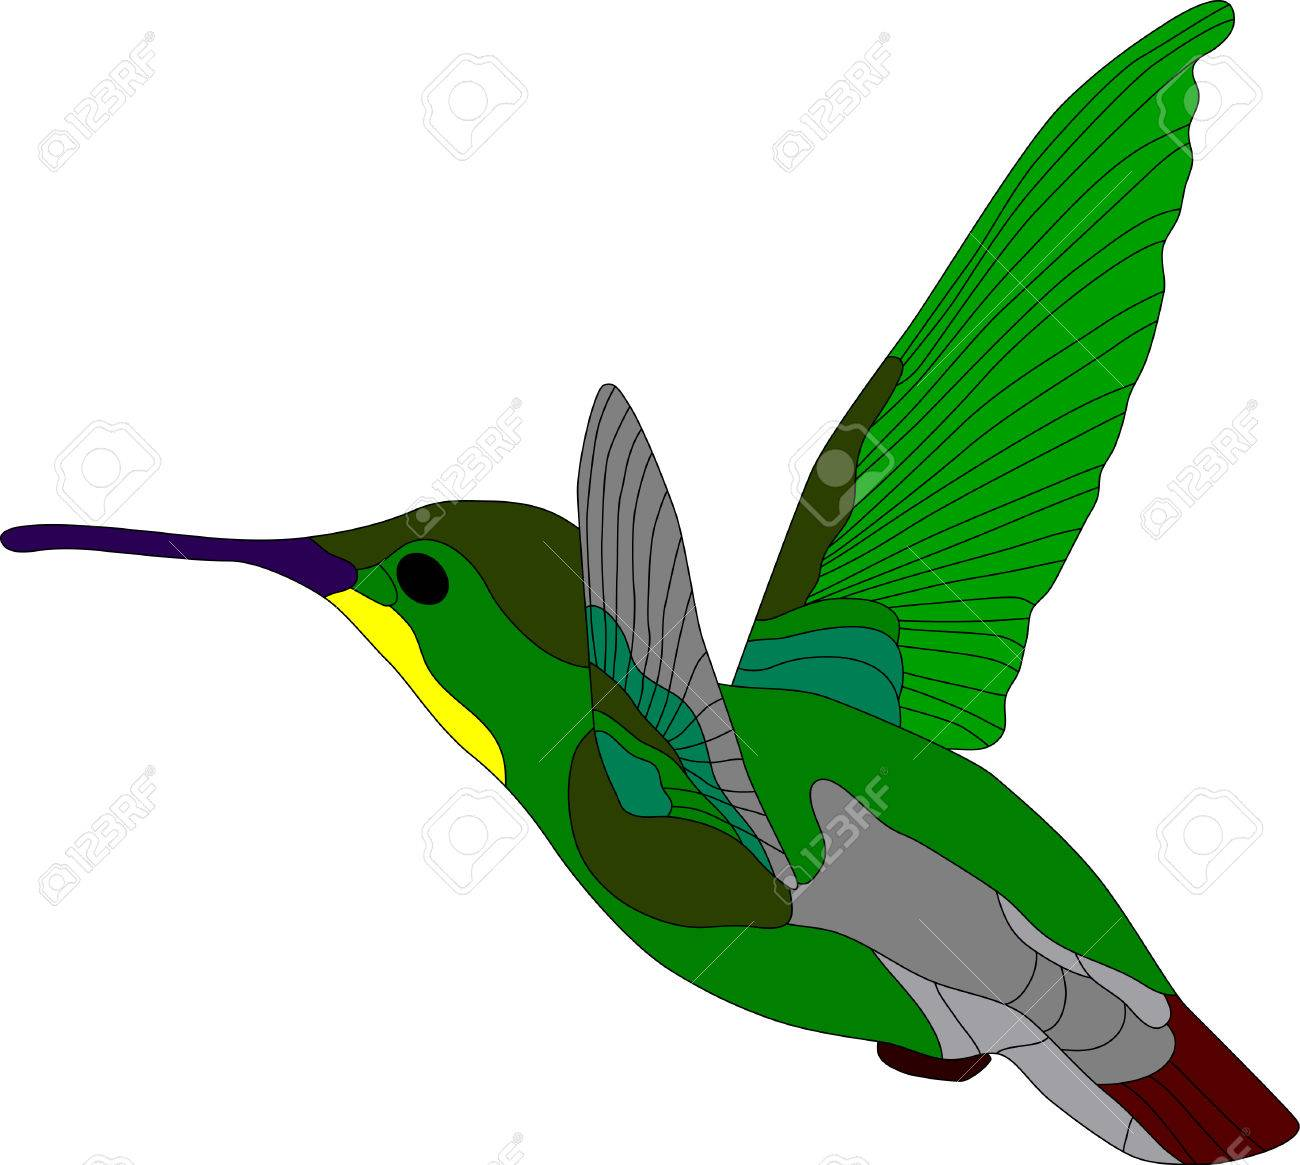 vector - hummingbird isolated on white background Stock Vector - 4325108